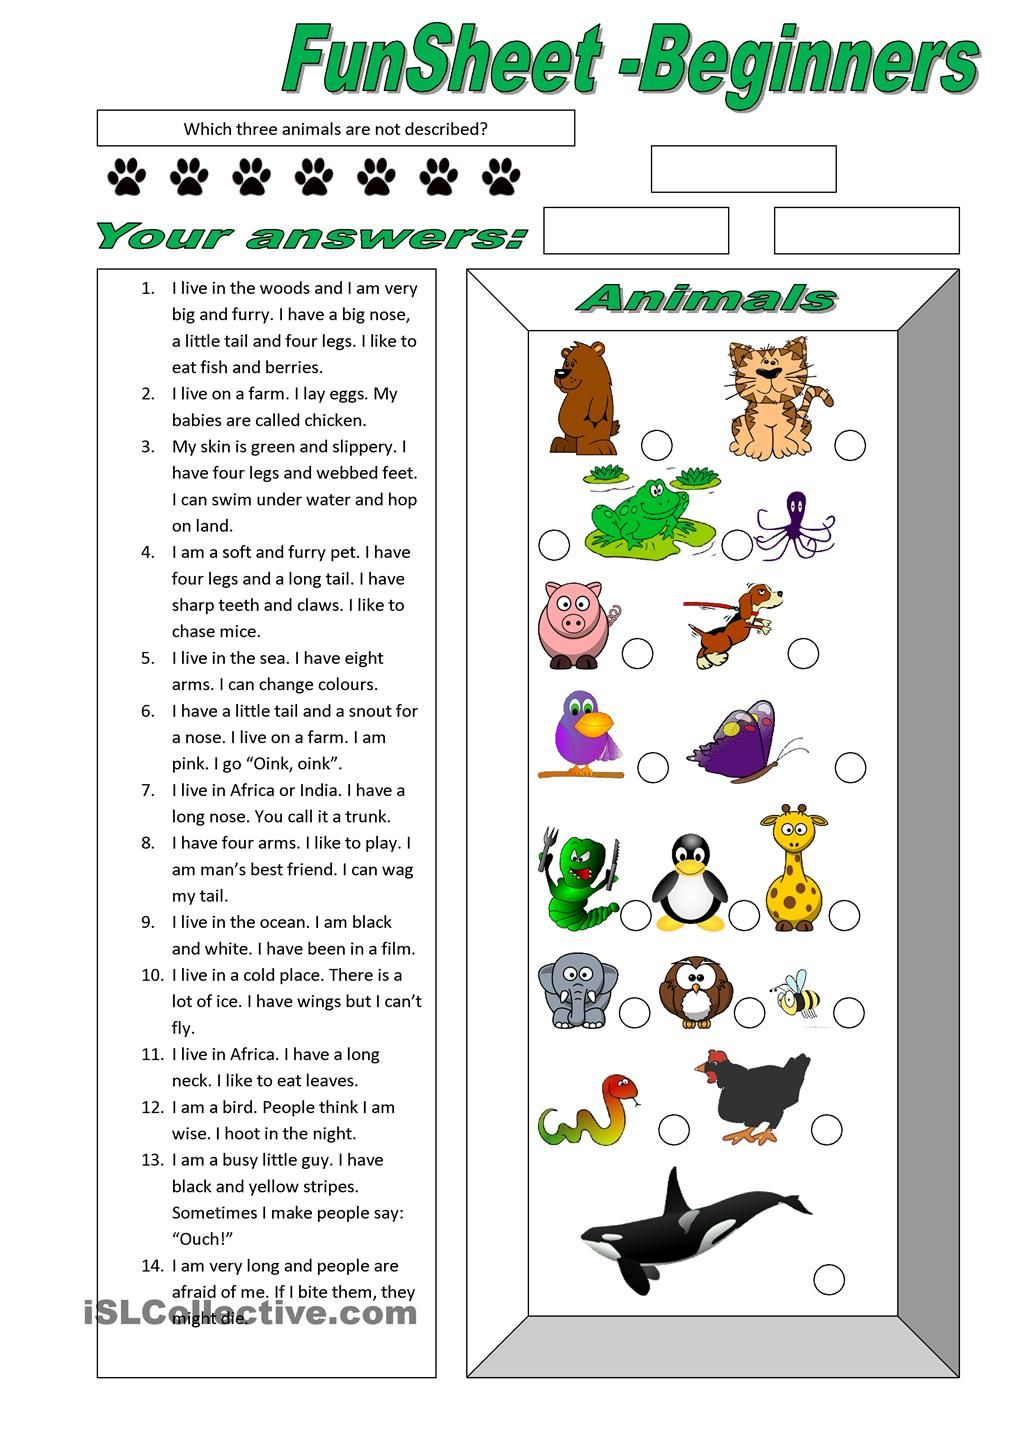 Worksheets Esl Worksheets For Beginners funsheet for beginners animals free esl worksheets worksheets